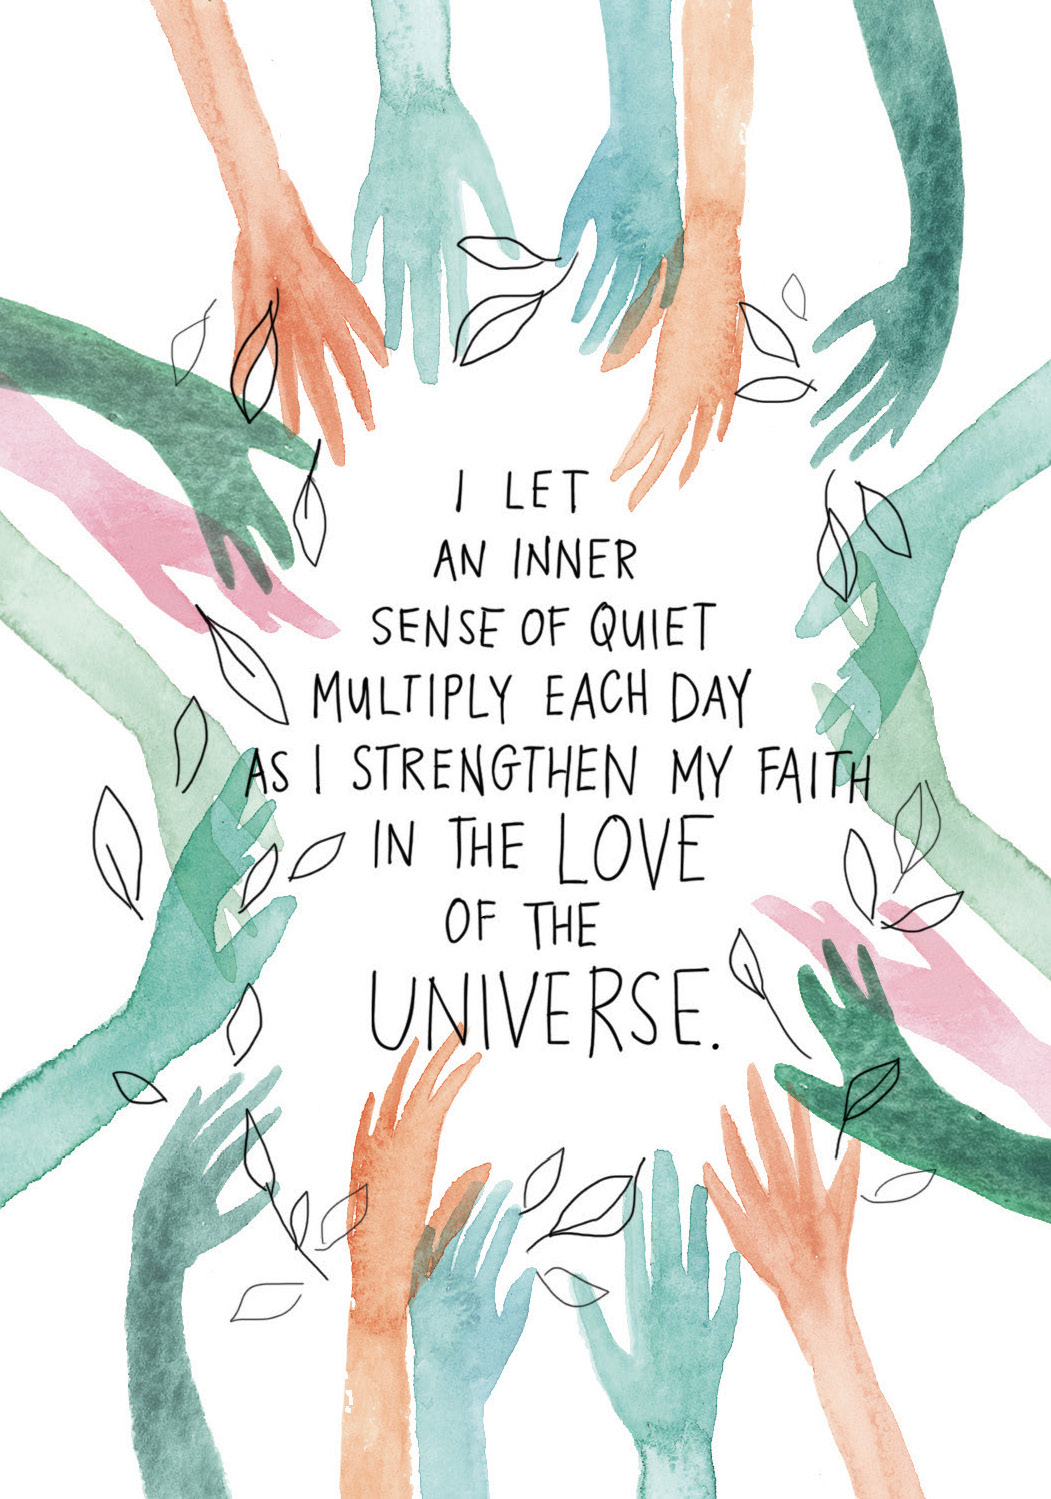 I let an inner sense of quiet multiply each day as I strengthen my faith in the love of the Universe | Super Attractor card deck